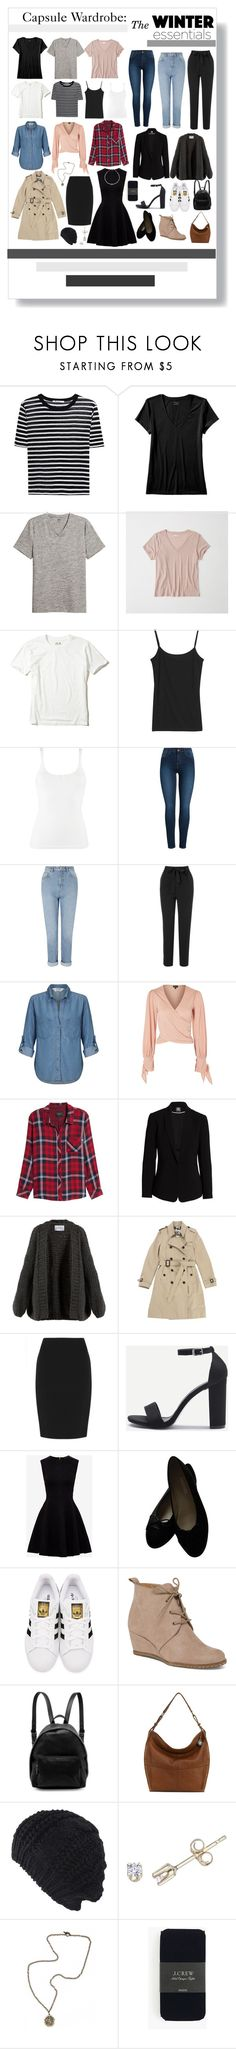 """""""Capsule Wardrobe: Winter Essentials"""" by musicislife-983 ❤ liked on Polyvore featuring T By Alexander Wang, Banana Republic, Abercrombie & Fitch, Hollister Co., Icebreaker, John Lewis, Pieces, Miss Selfridge, AngelEye and Topshop"""